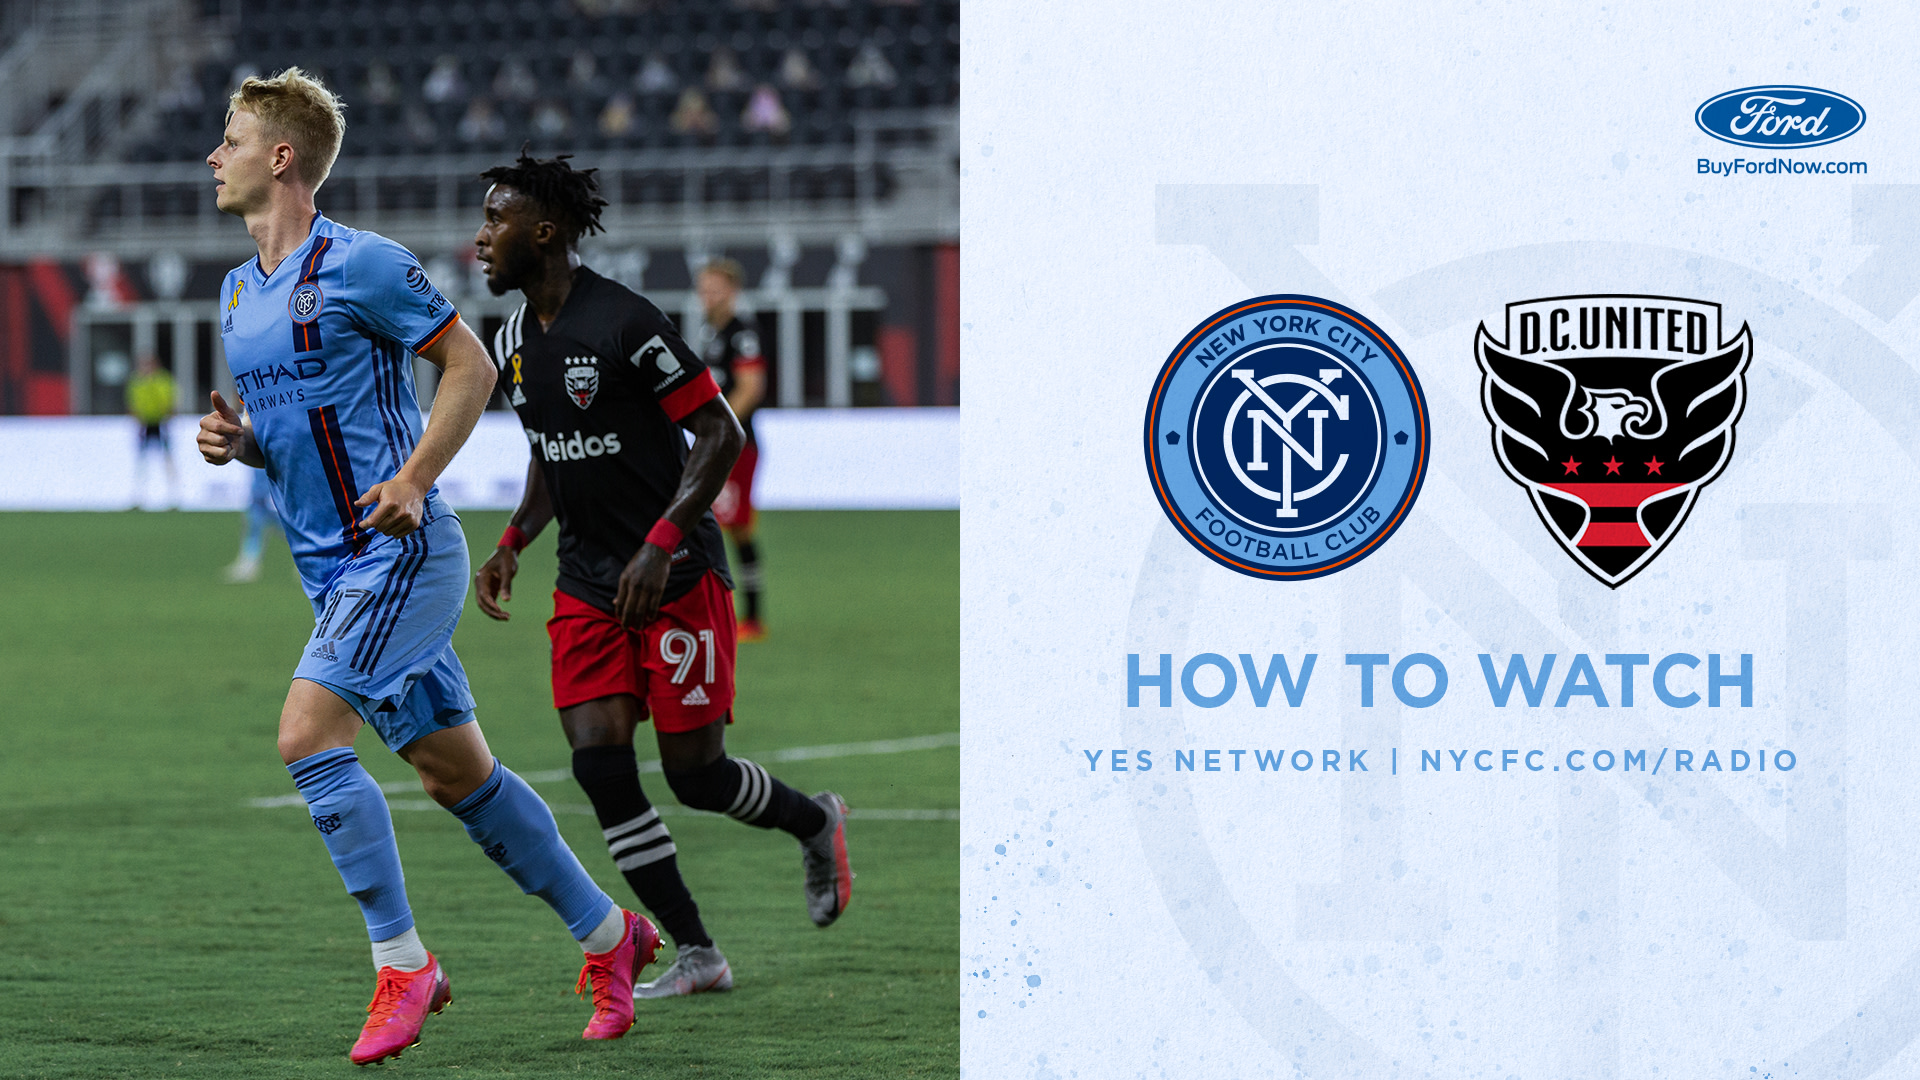 How to Watch & Listen to NYCFC vs. DC United | New York City FC